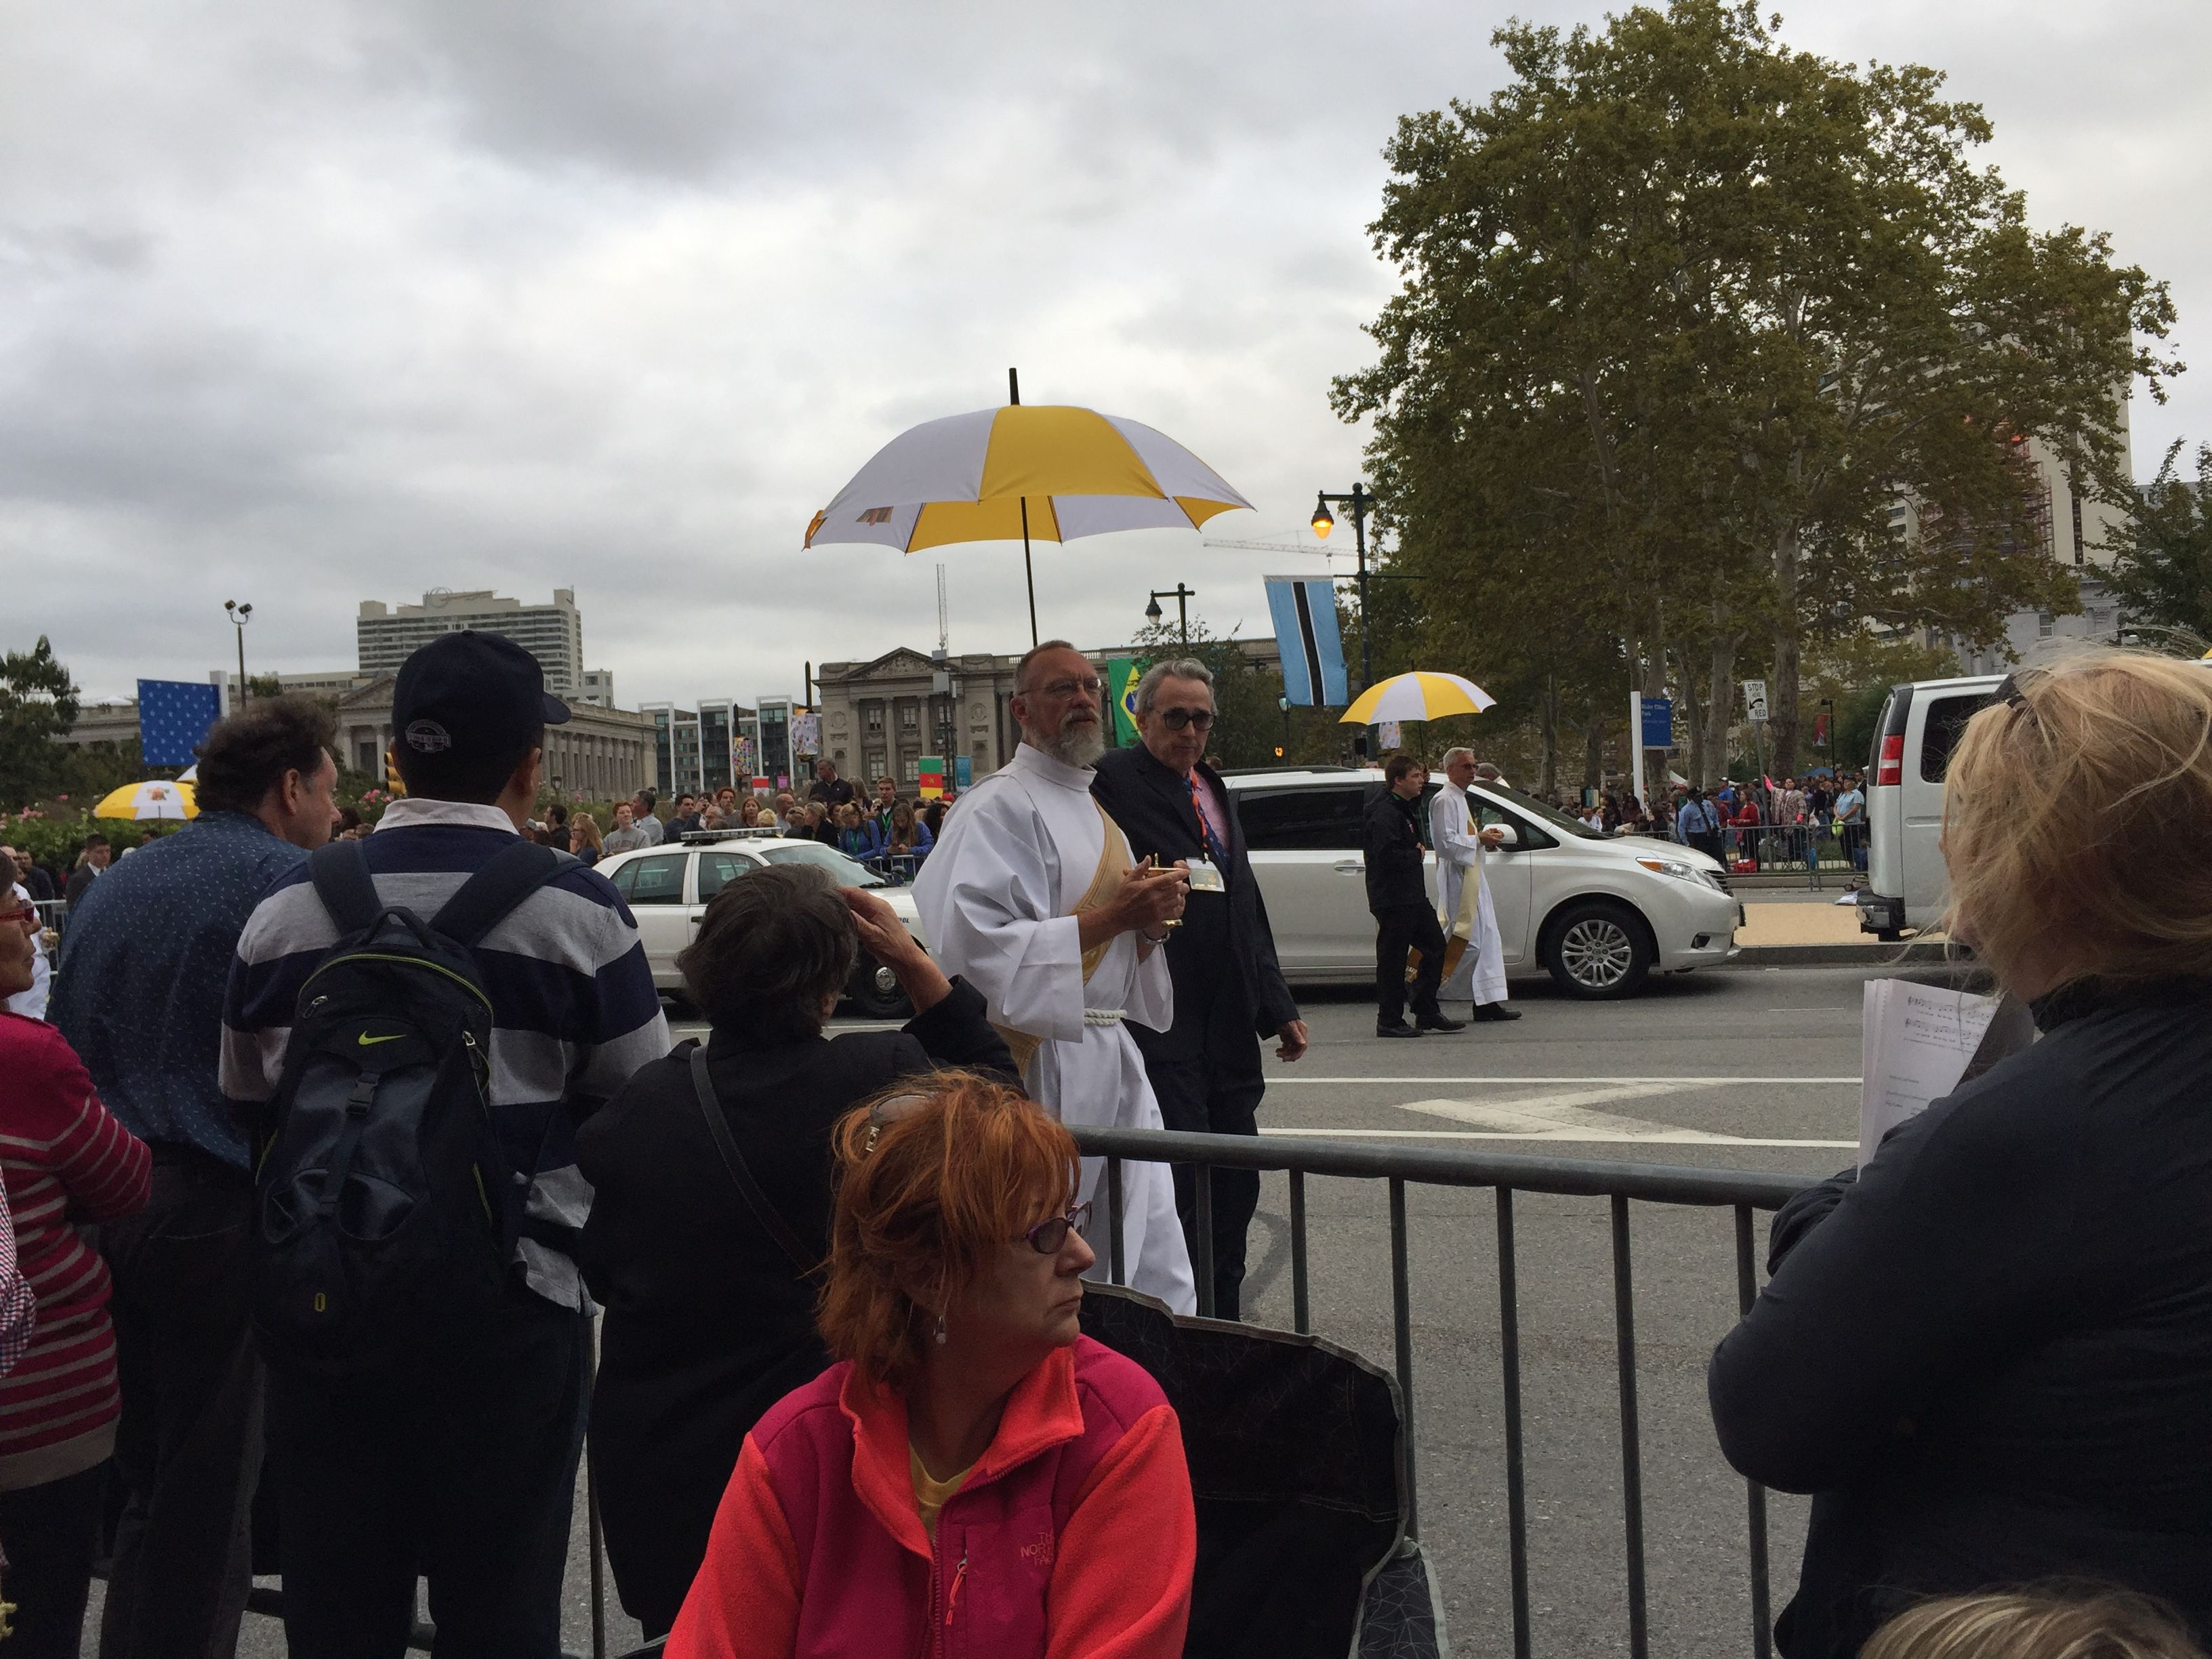 Army of priests come out to distribute communion during Papal Mass in Philly.